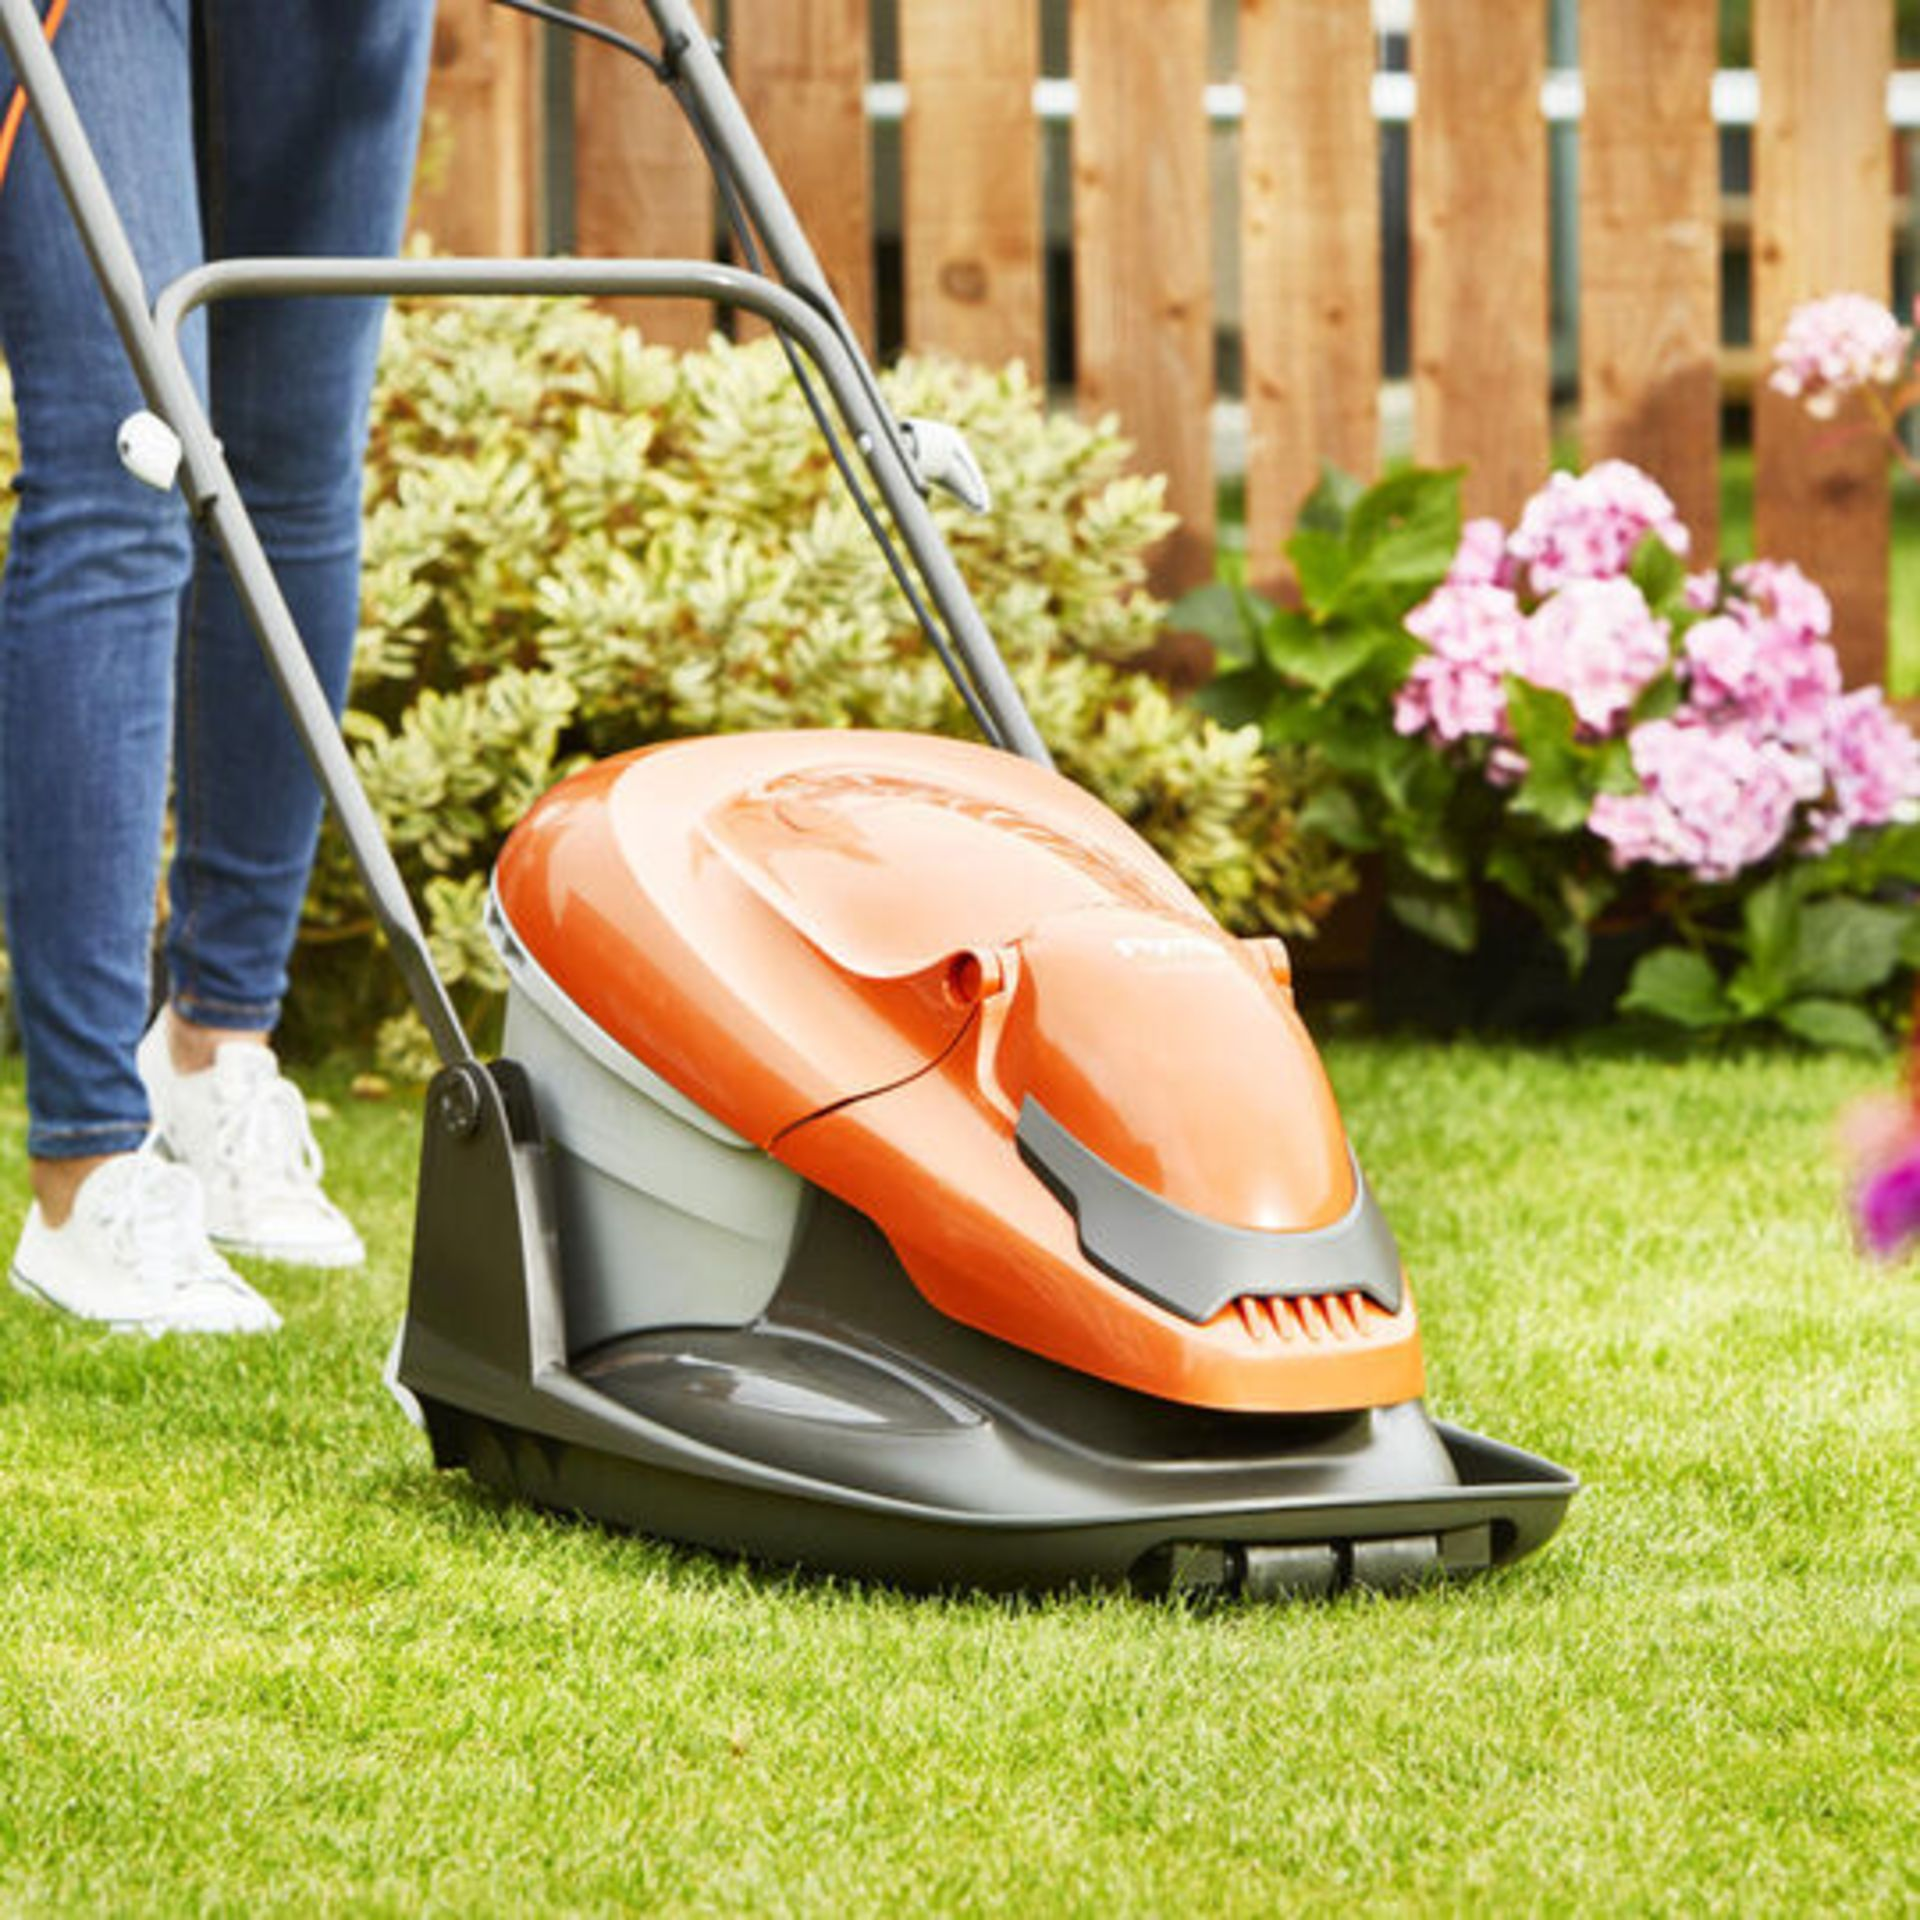 (P8) 1x Flymo EasiGlide 300 RRP £99. Hover Collect Lawnmower. New, Sealed Item. - Image 2 of 3